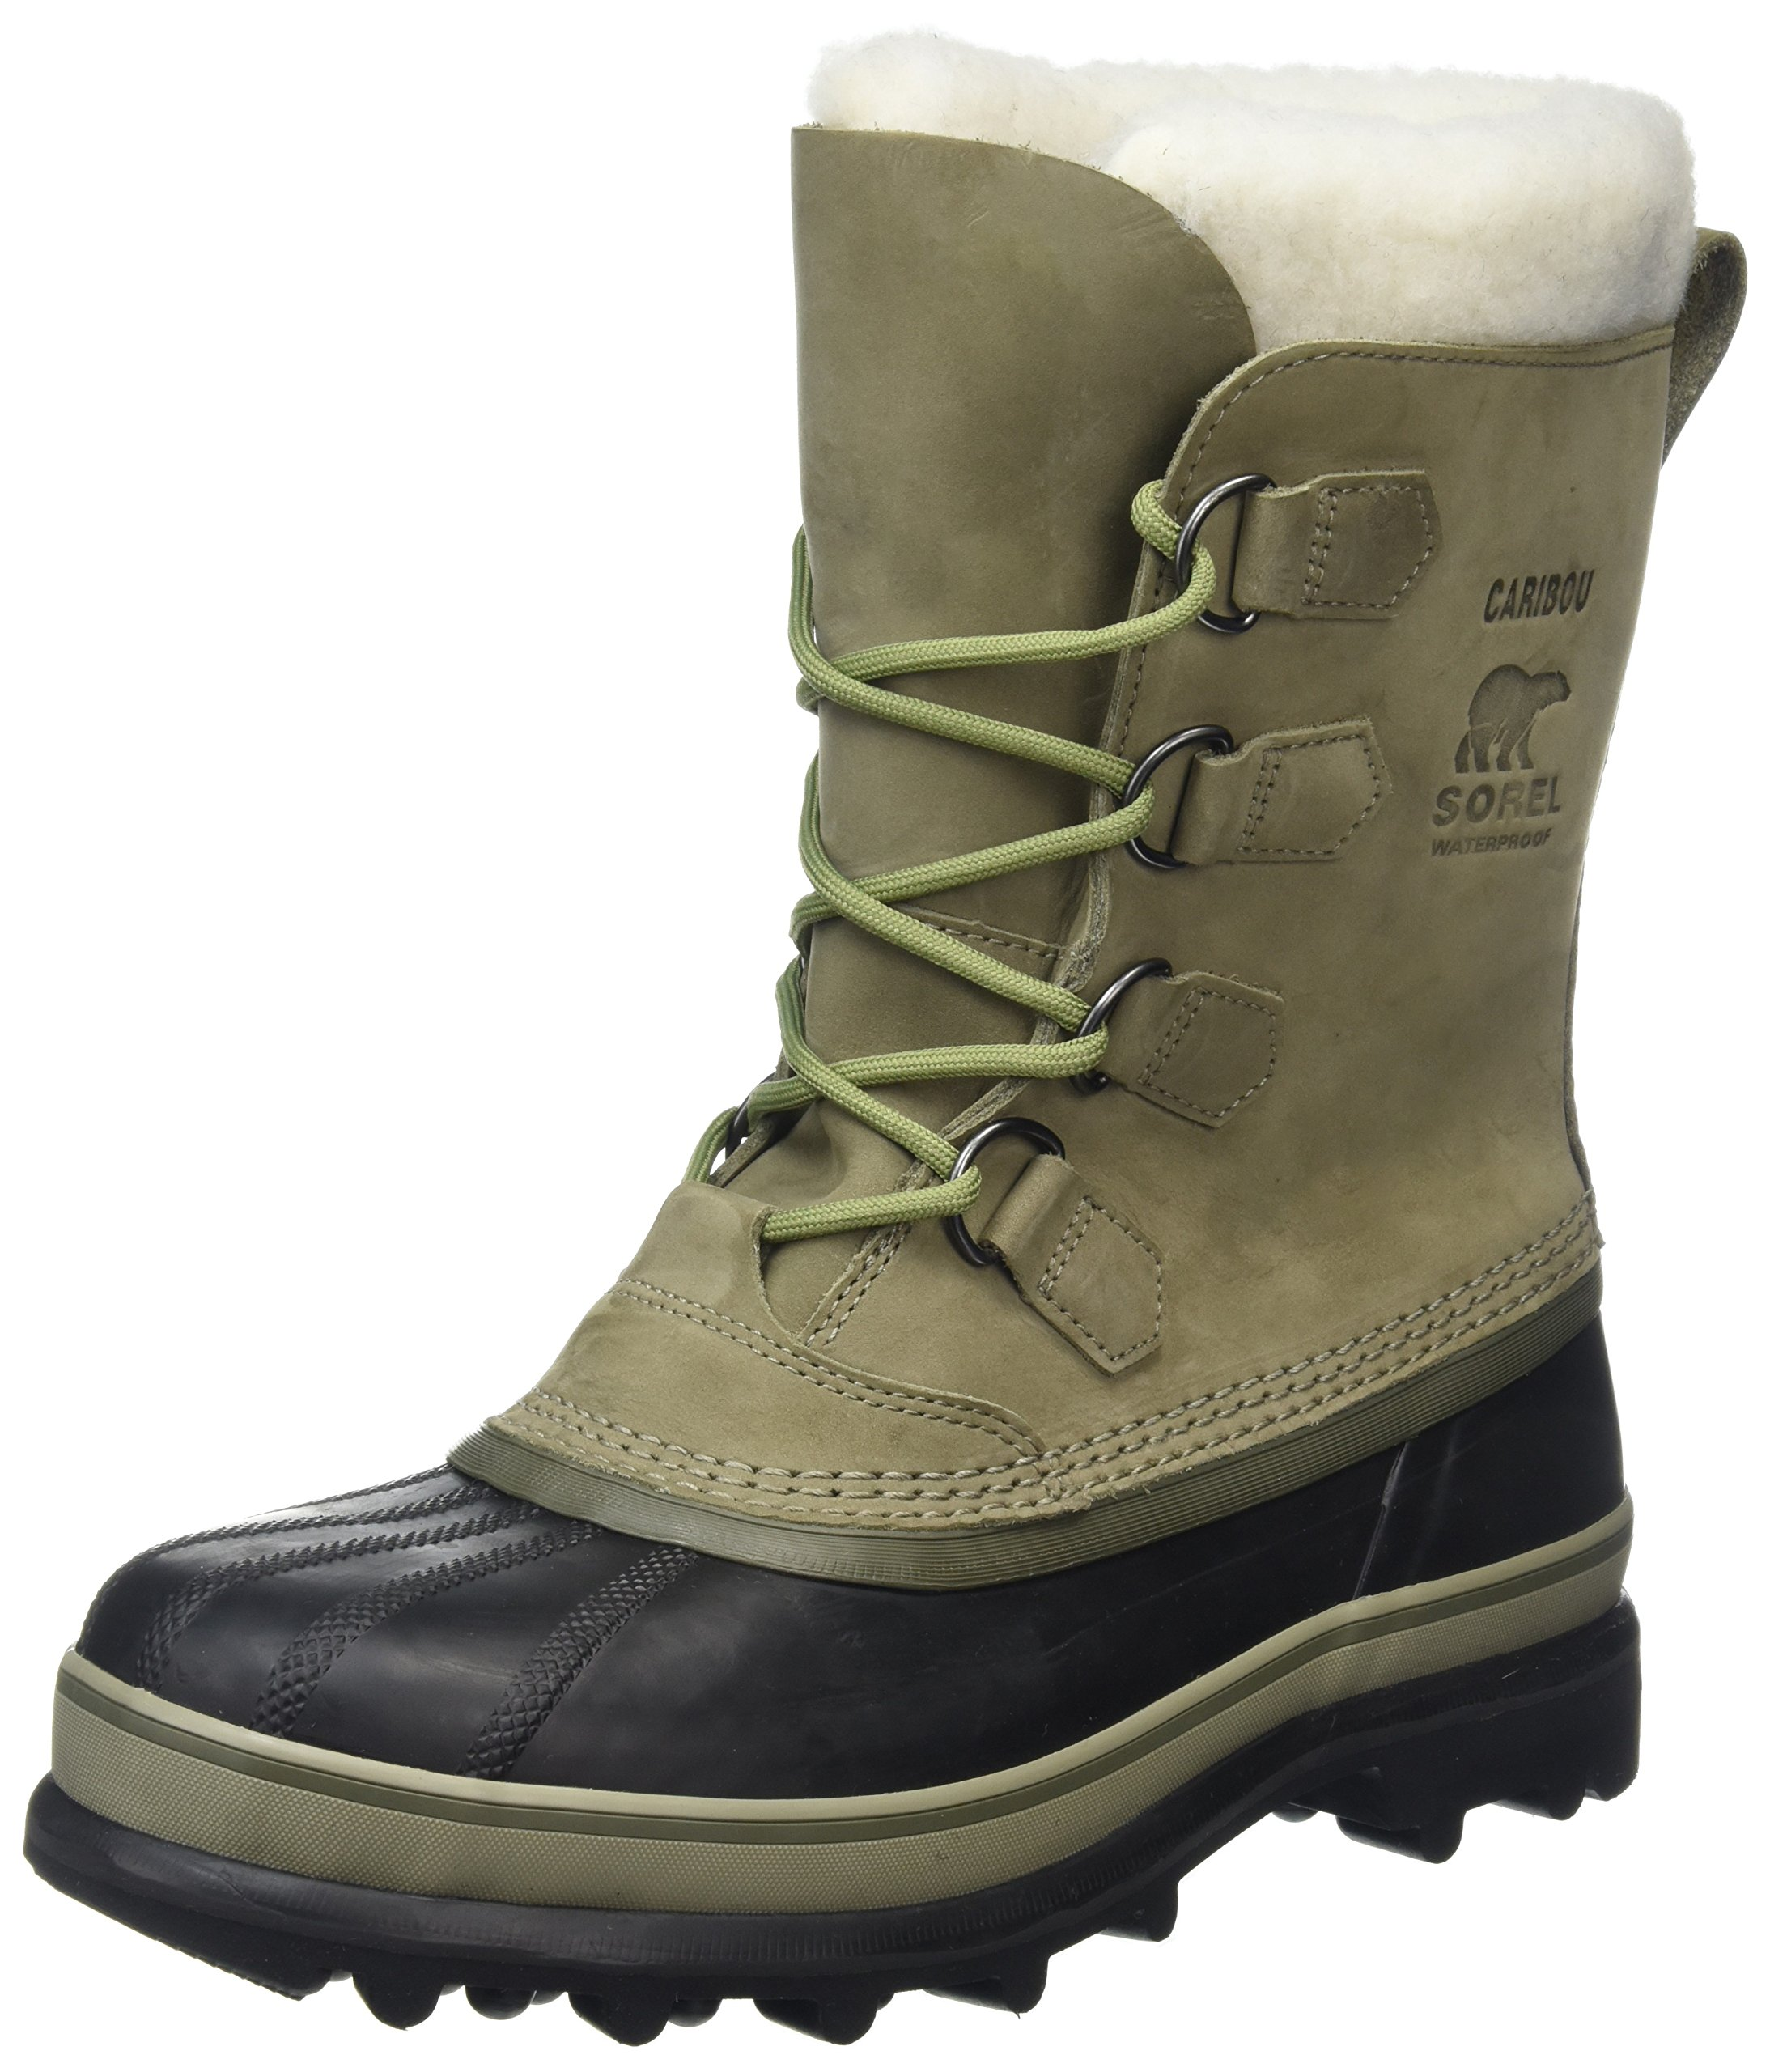 Men's Sorel Caribou Waterproof Boot Sage/Black Size 11 M US